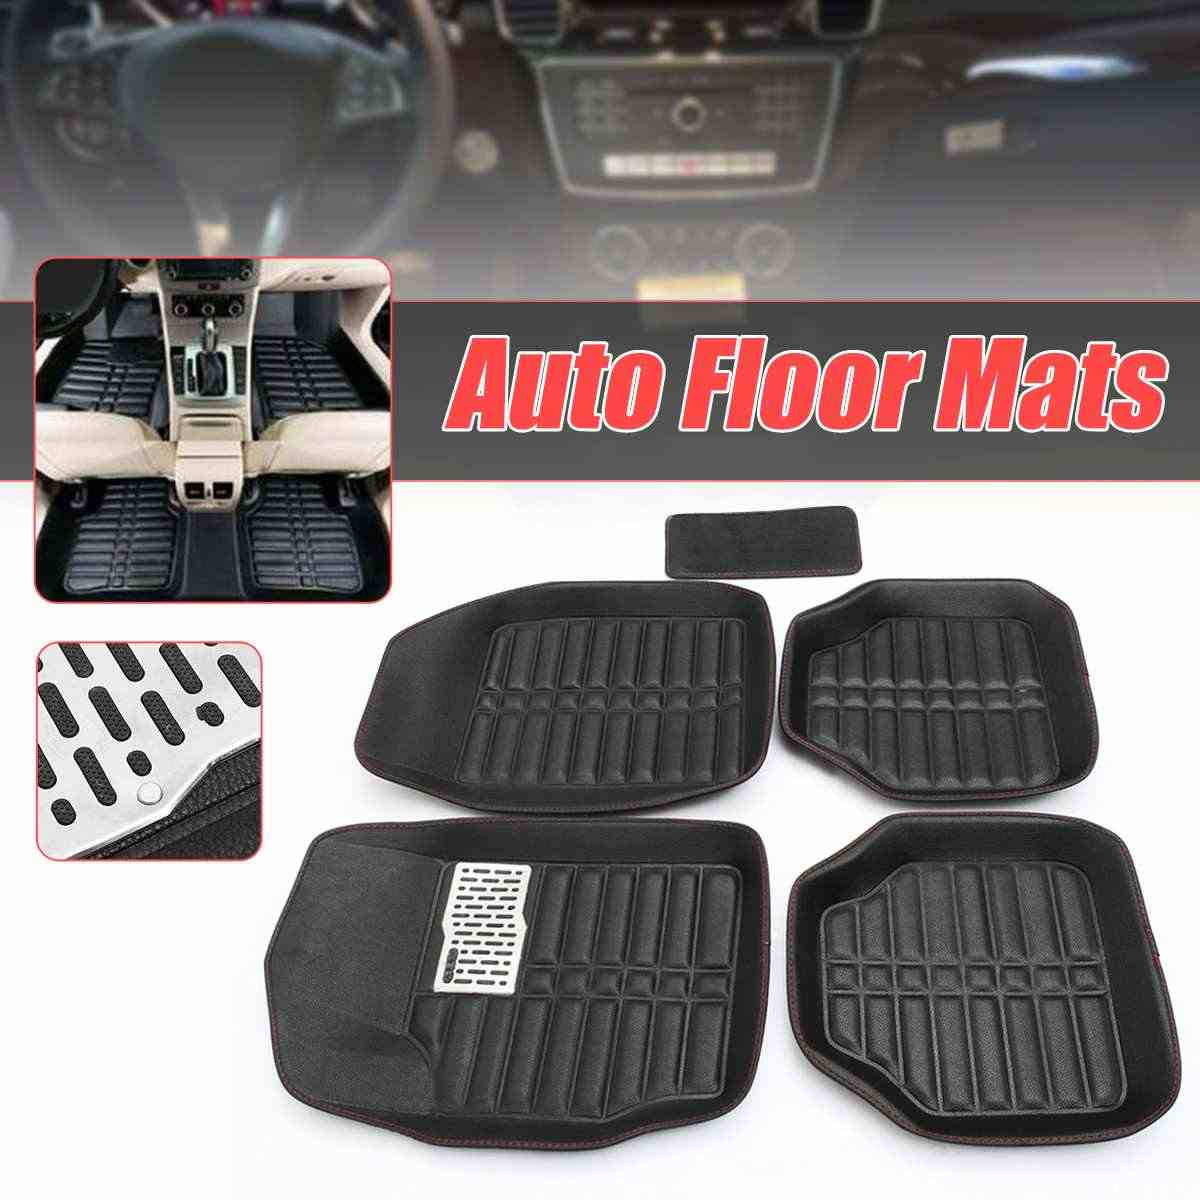 Floor Mats Automobiles & Motorcycles Waterproof Carpet Floor Mats Plane-universal Pvc Rubber Automobile Carpet Cover Car Interior Accessories Protector 4pcs Buy One Give One